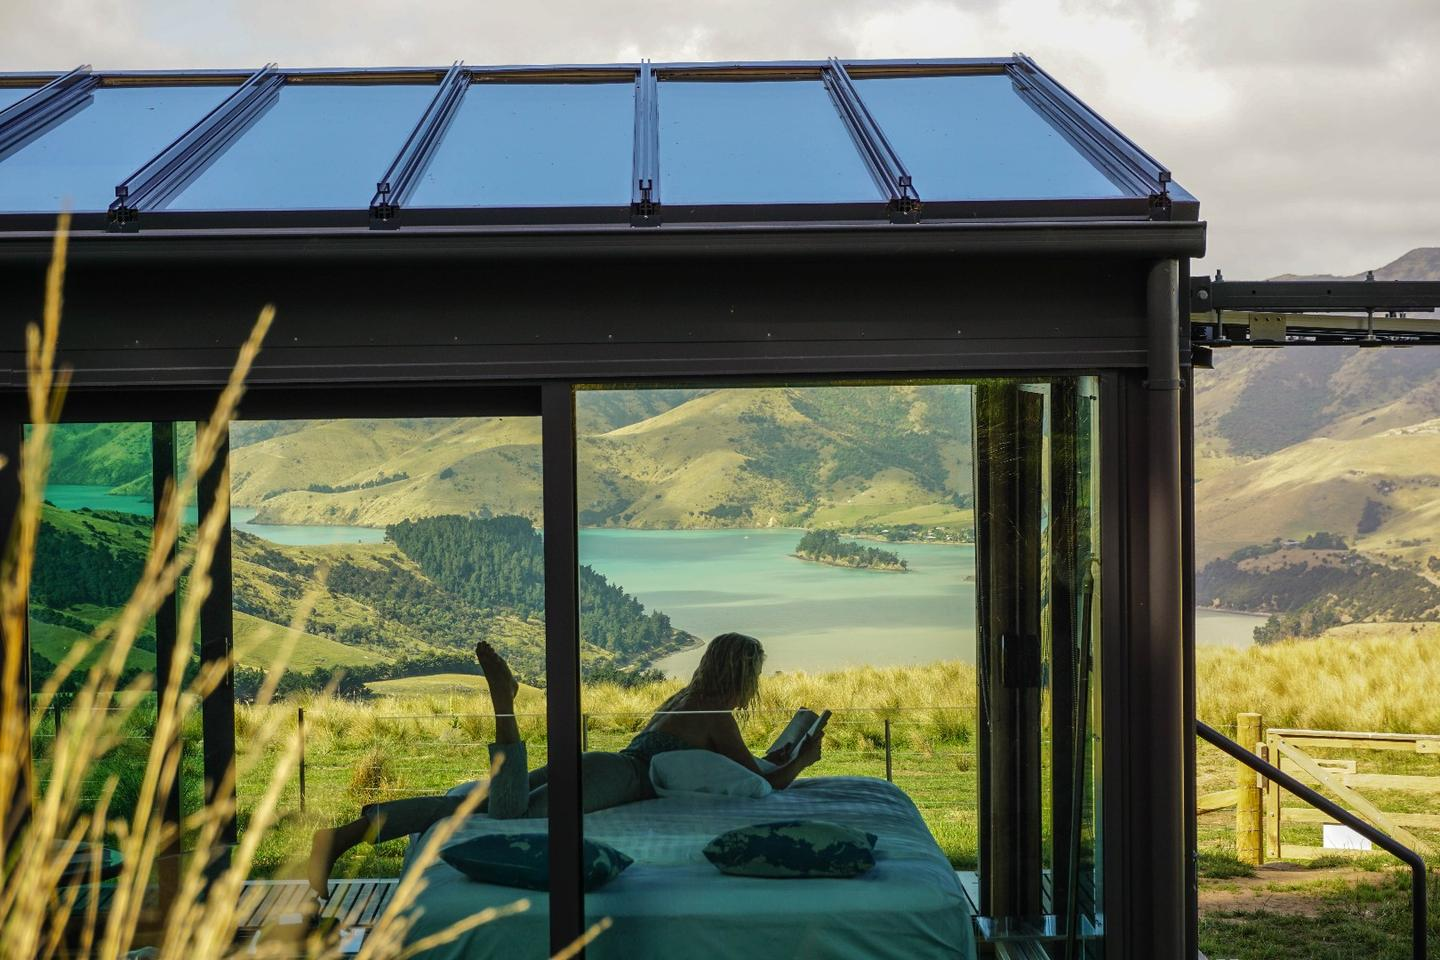 All PurePods feature glass walls, floors and ceilings